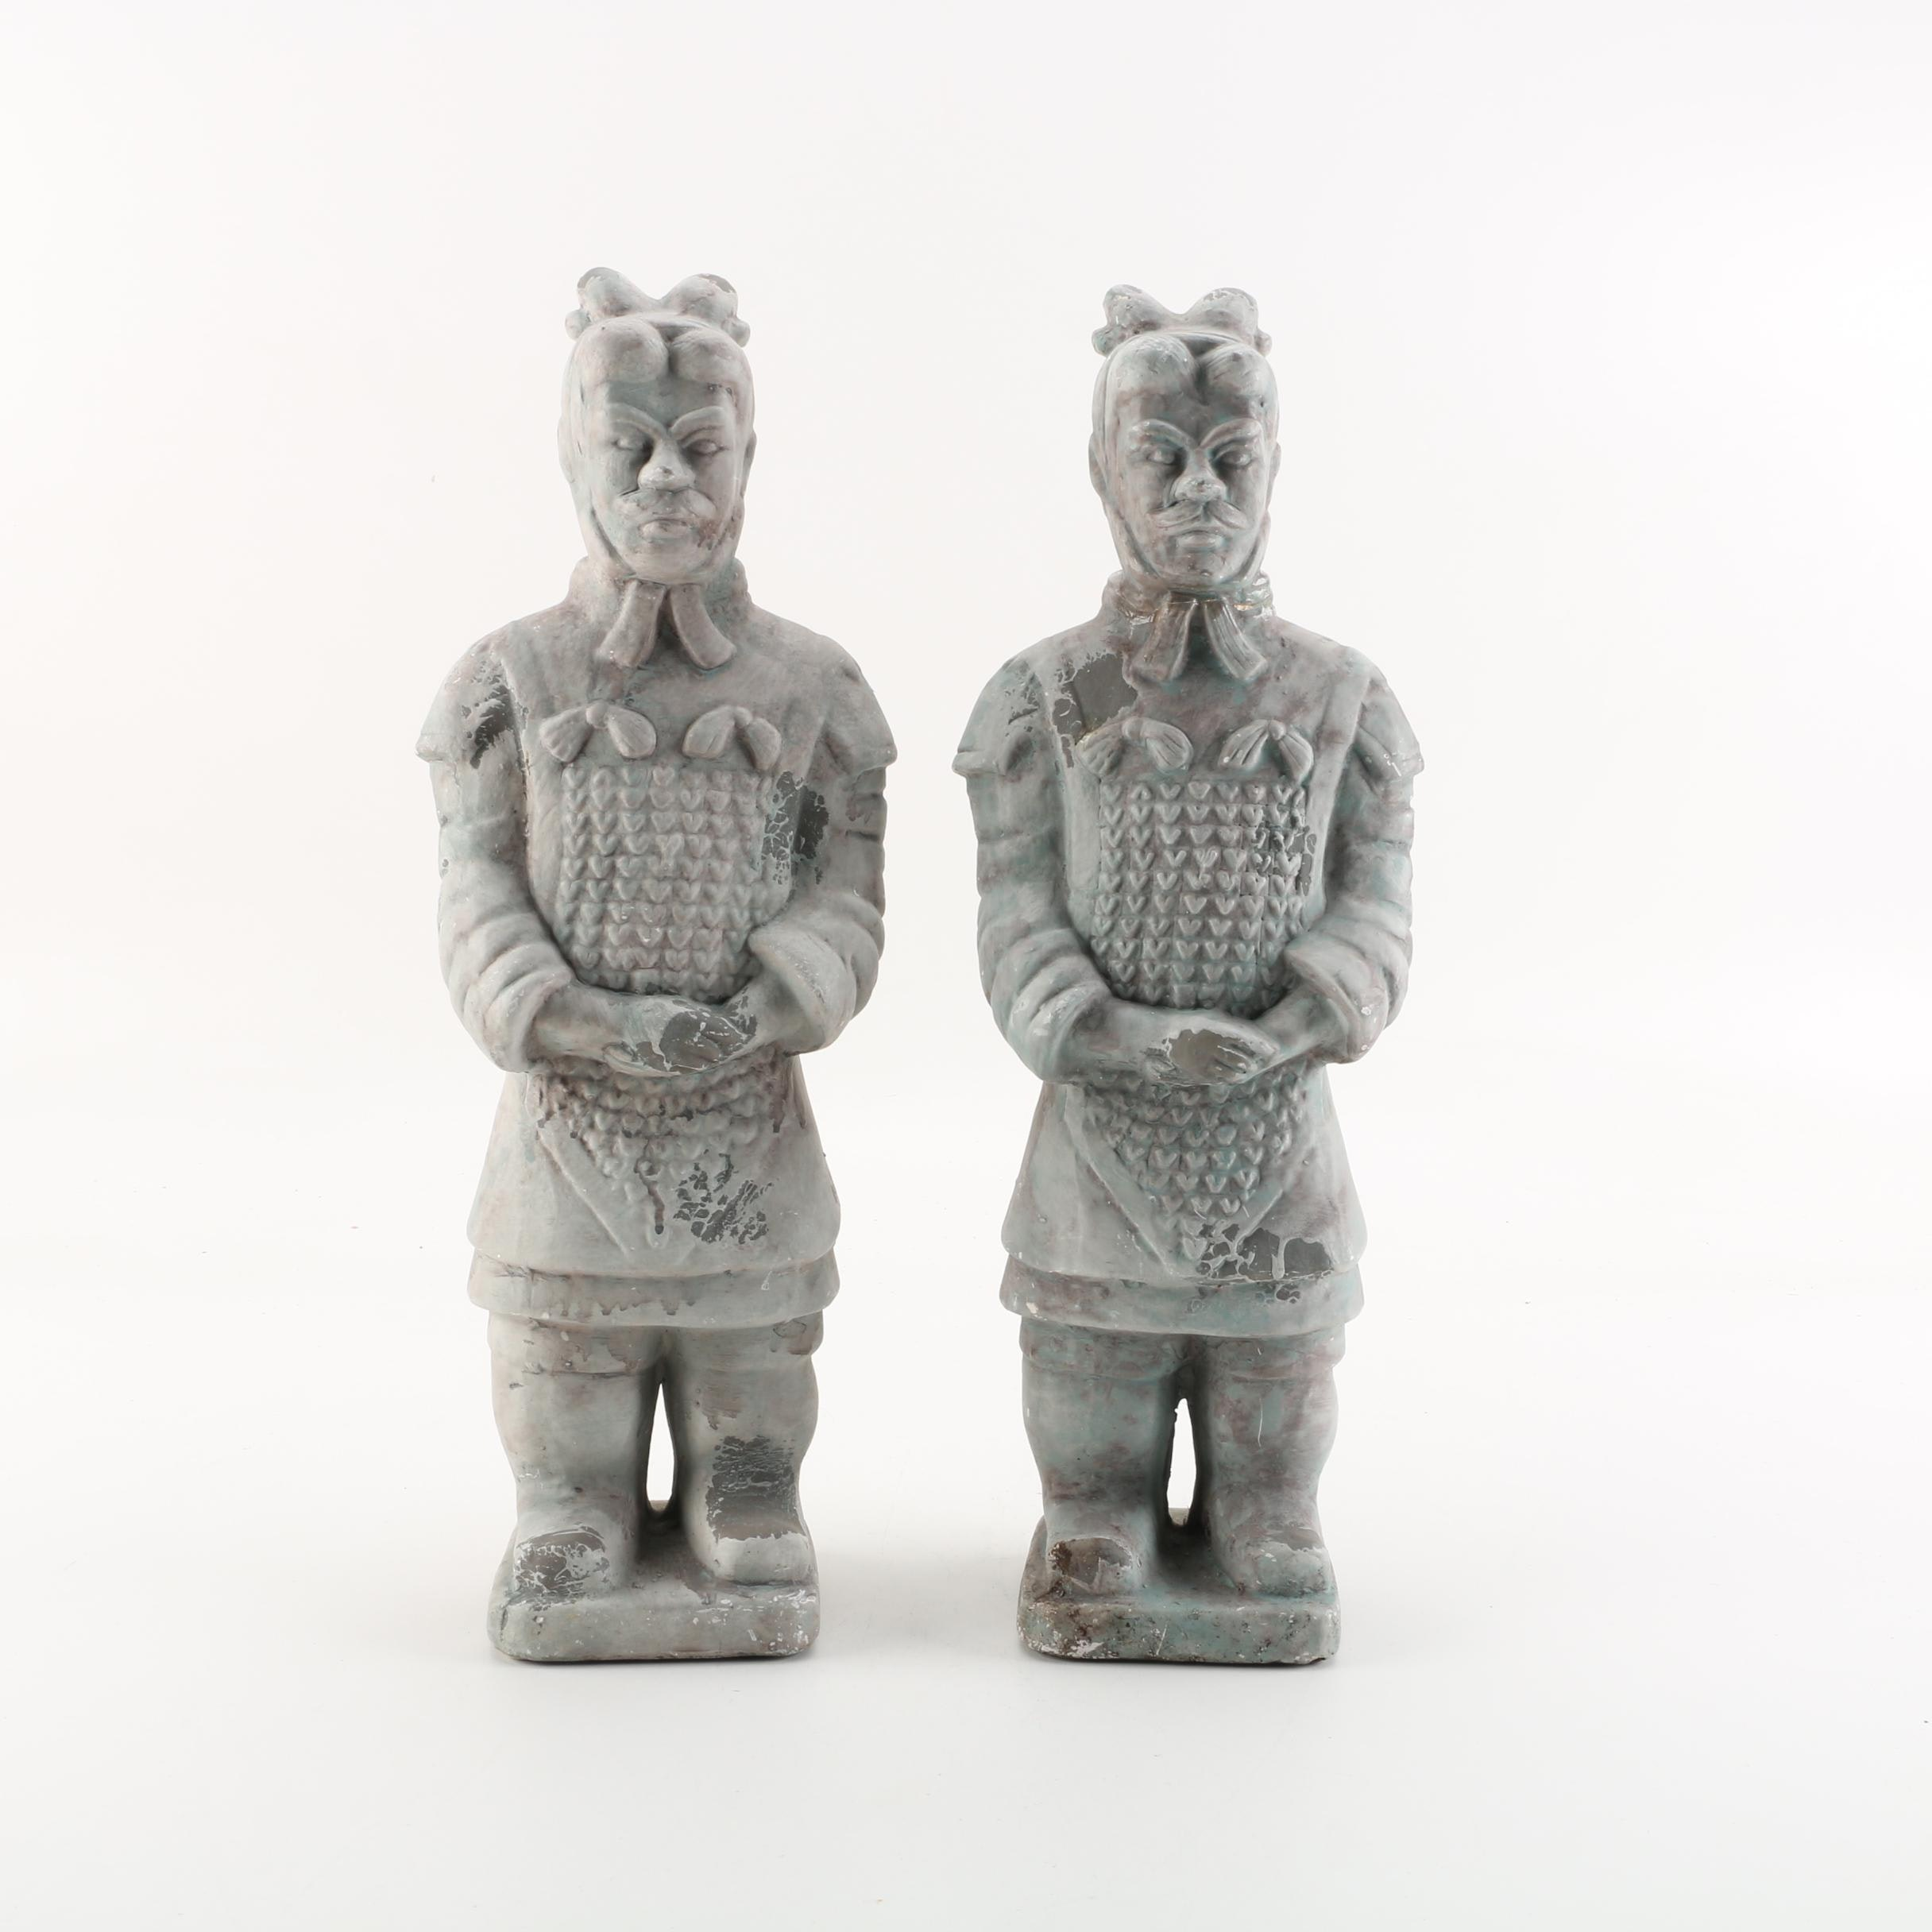 Replica Chinese Terracotta Warrior Figurines